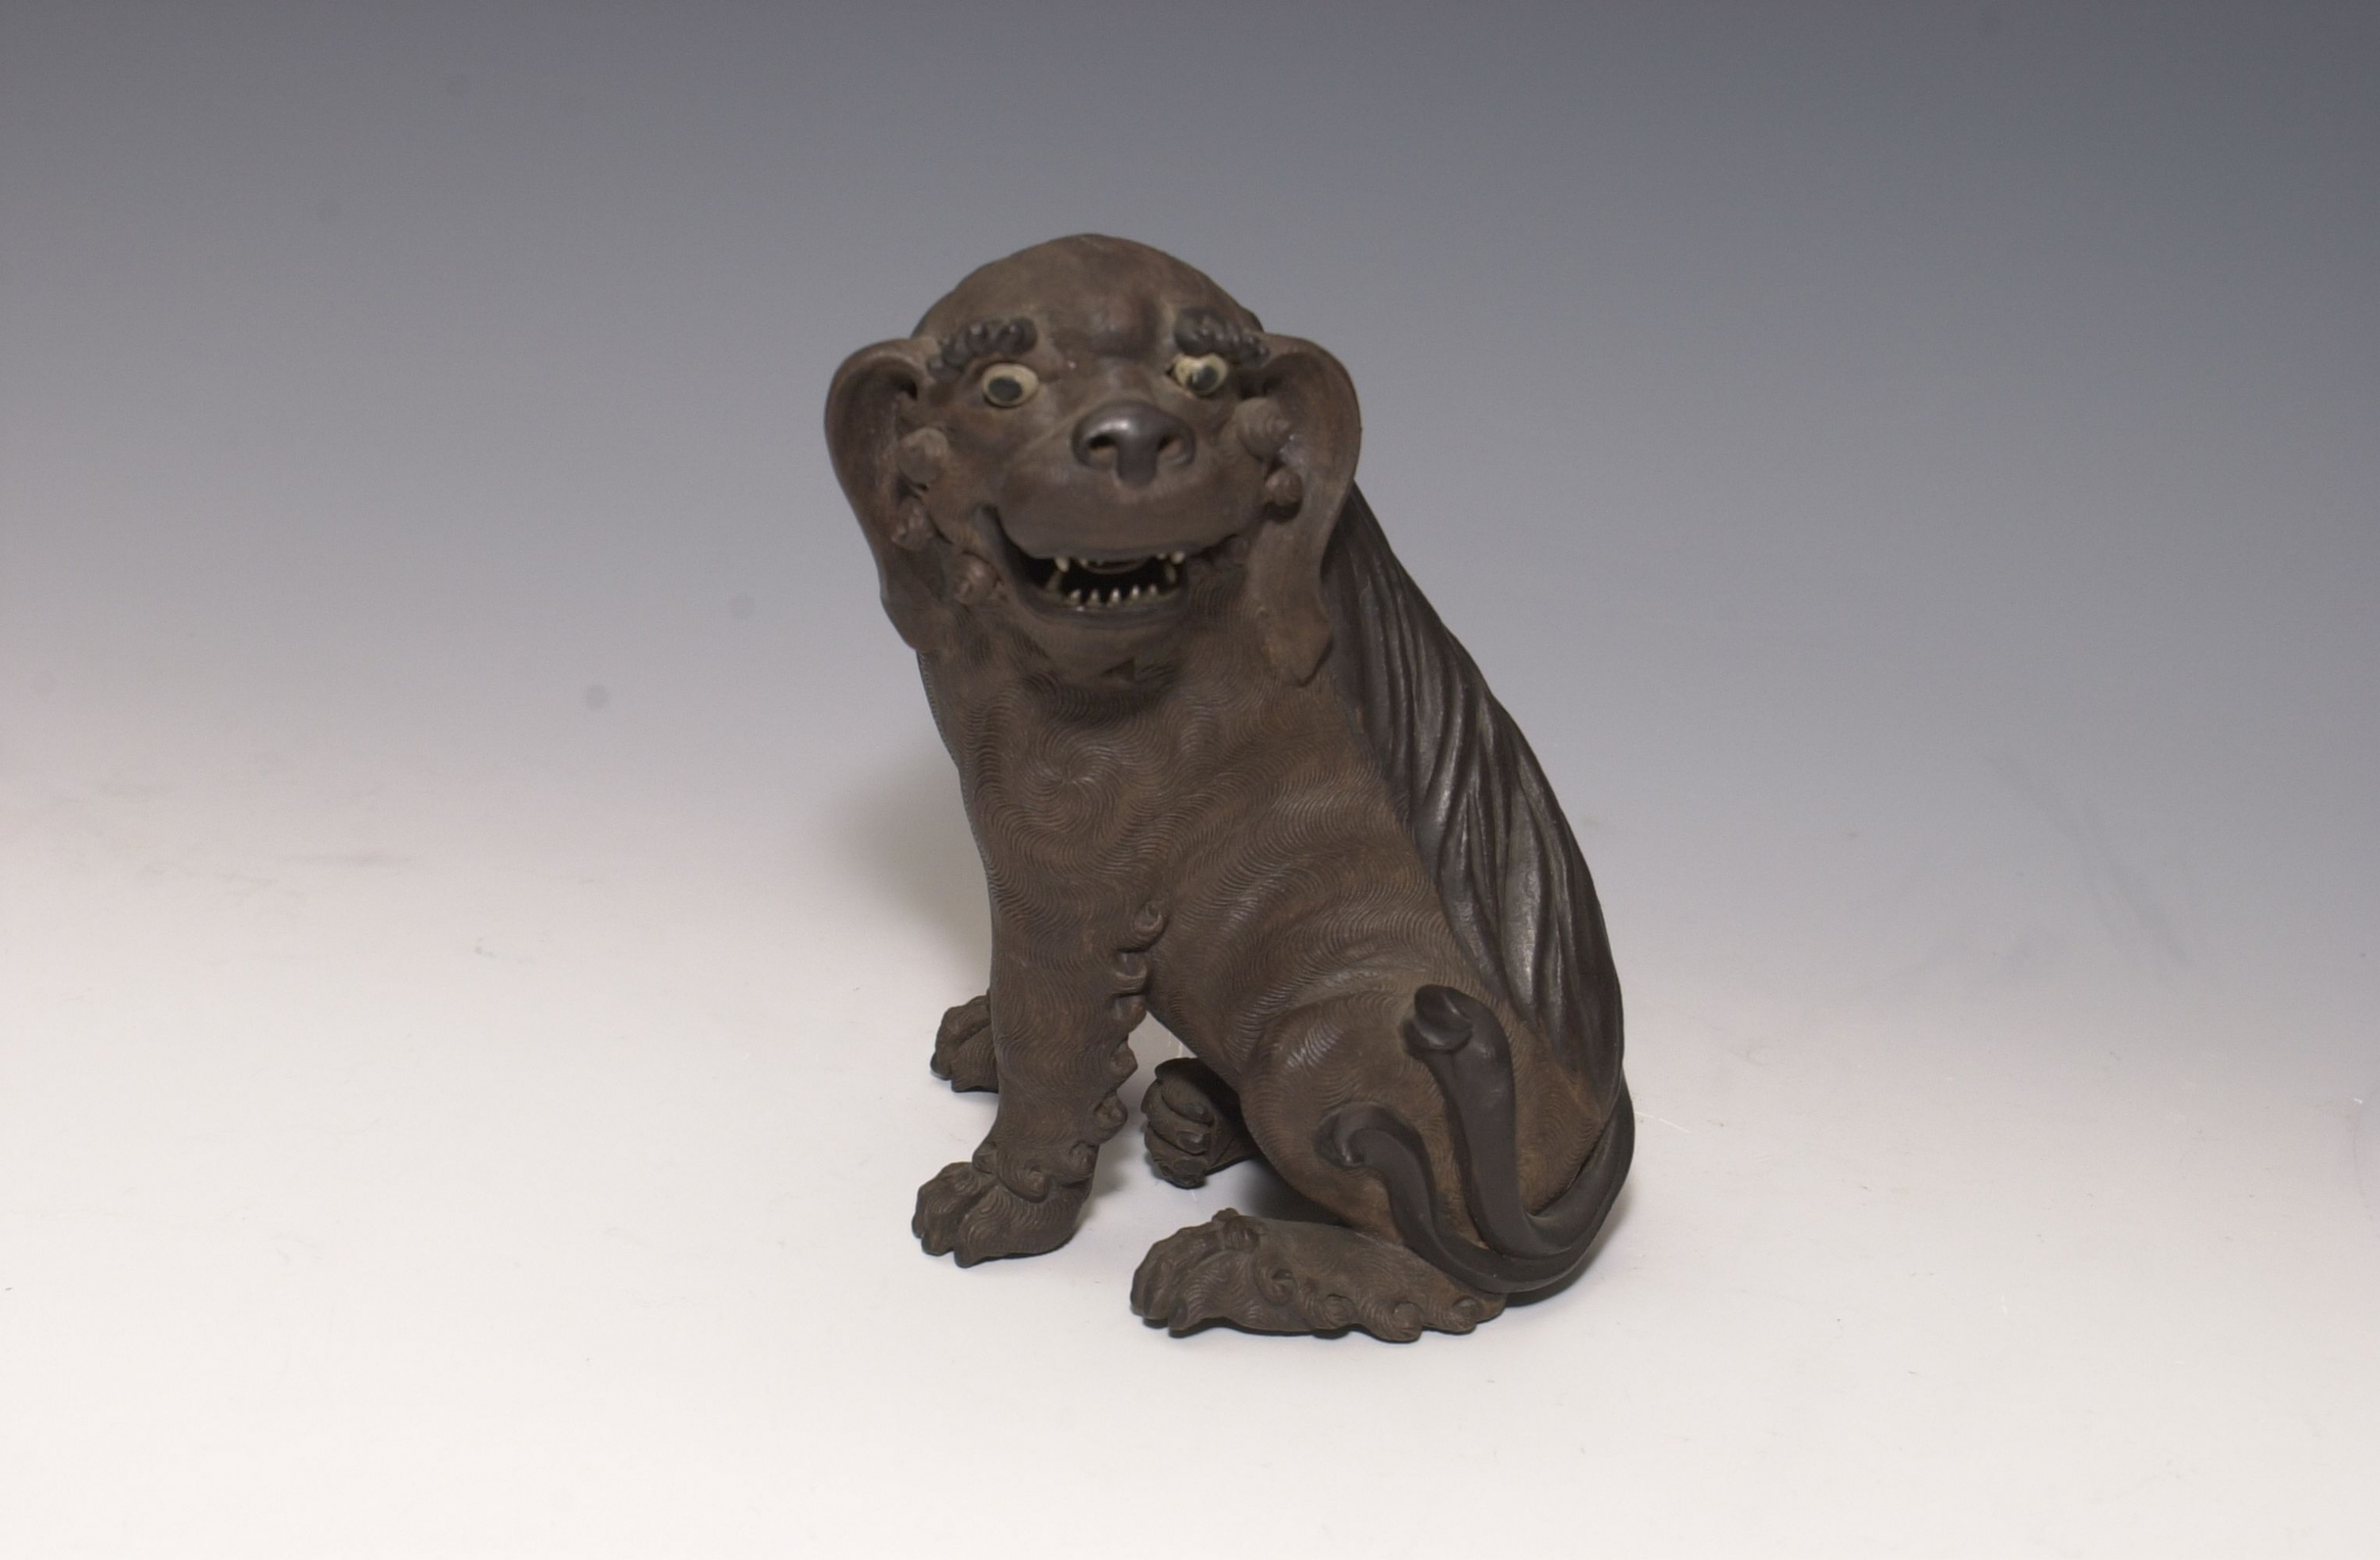 Unglazed Lion Dog Early 20th century, attributed to Huo Jin Shiwan kiln ware of Foshan, Guangdong province Gift of Bei Shan Tang Art museum collection Acc. no. 1981.0065  The Lion dog, also known as Pekingese, is a Chinese ancient breed of small toy dog. This unglazed lion dog came from the Shiwan kiln of Foshan, Guangdong province, whose body was made from the local red clay, with dark brown glaze painted in places like eyes and nose. The sculpture is livened up by its turning head, opening mouth, as well as the impressed fine coat of hair. An elliptical mark on the neck denotes that it is made by the hunchback potter Huo Jin of Shiwan during republic China.